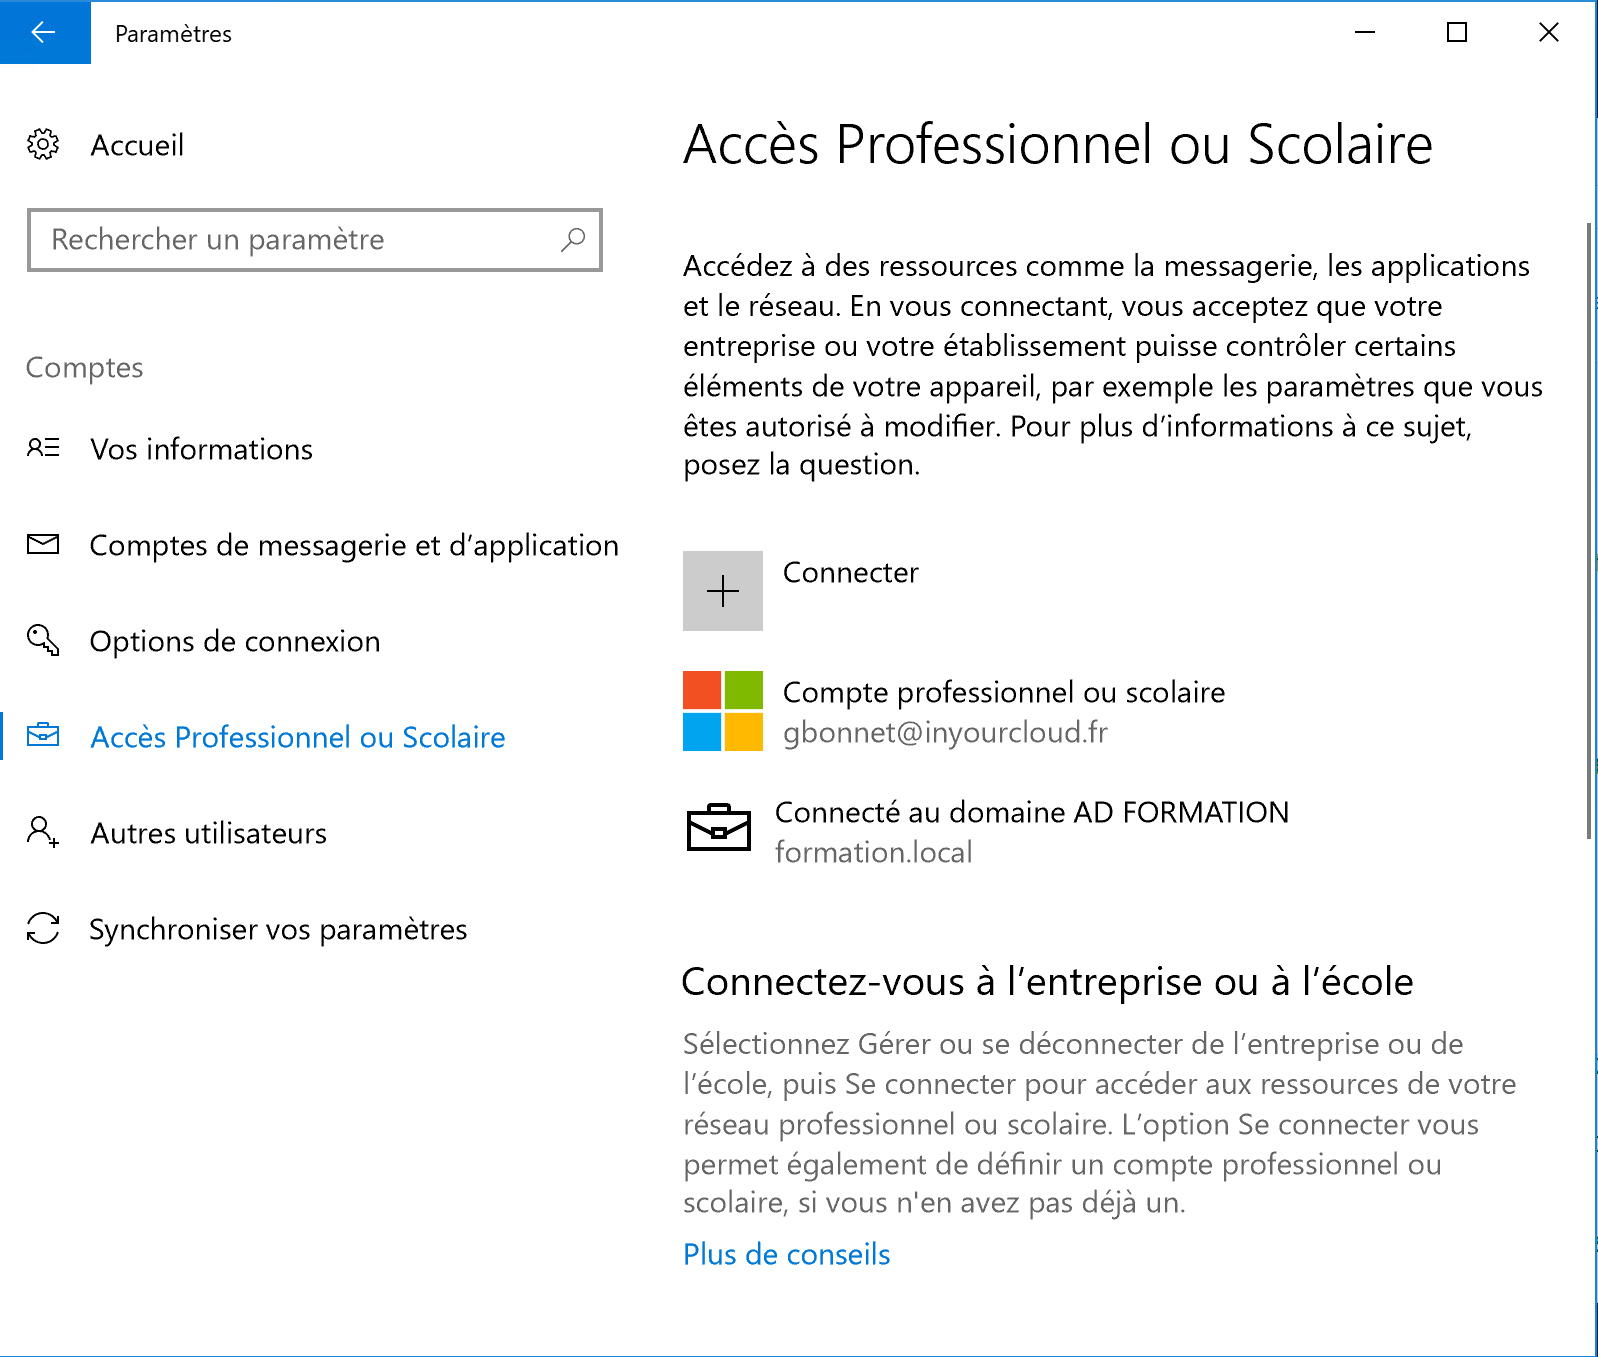 Co-management for Windows 10 devices - Blog on EMS and Azure